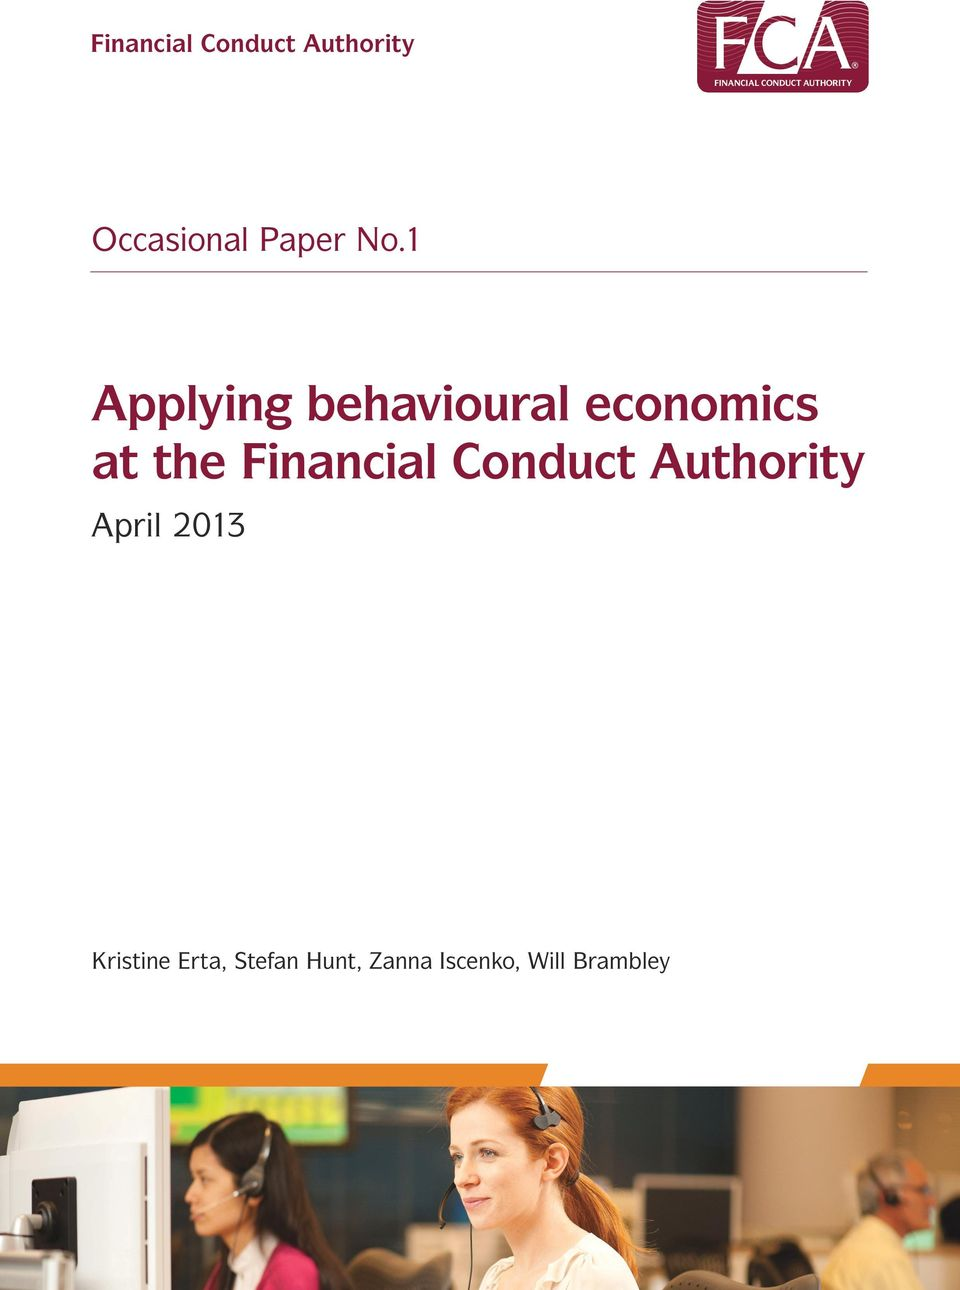 Financial Conduct Authority April 2013